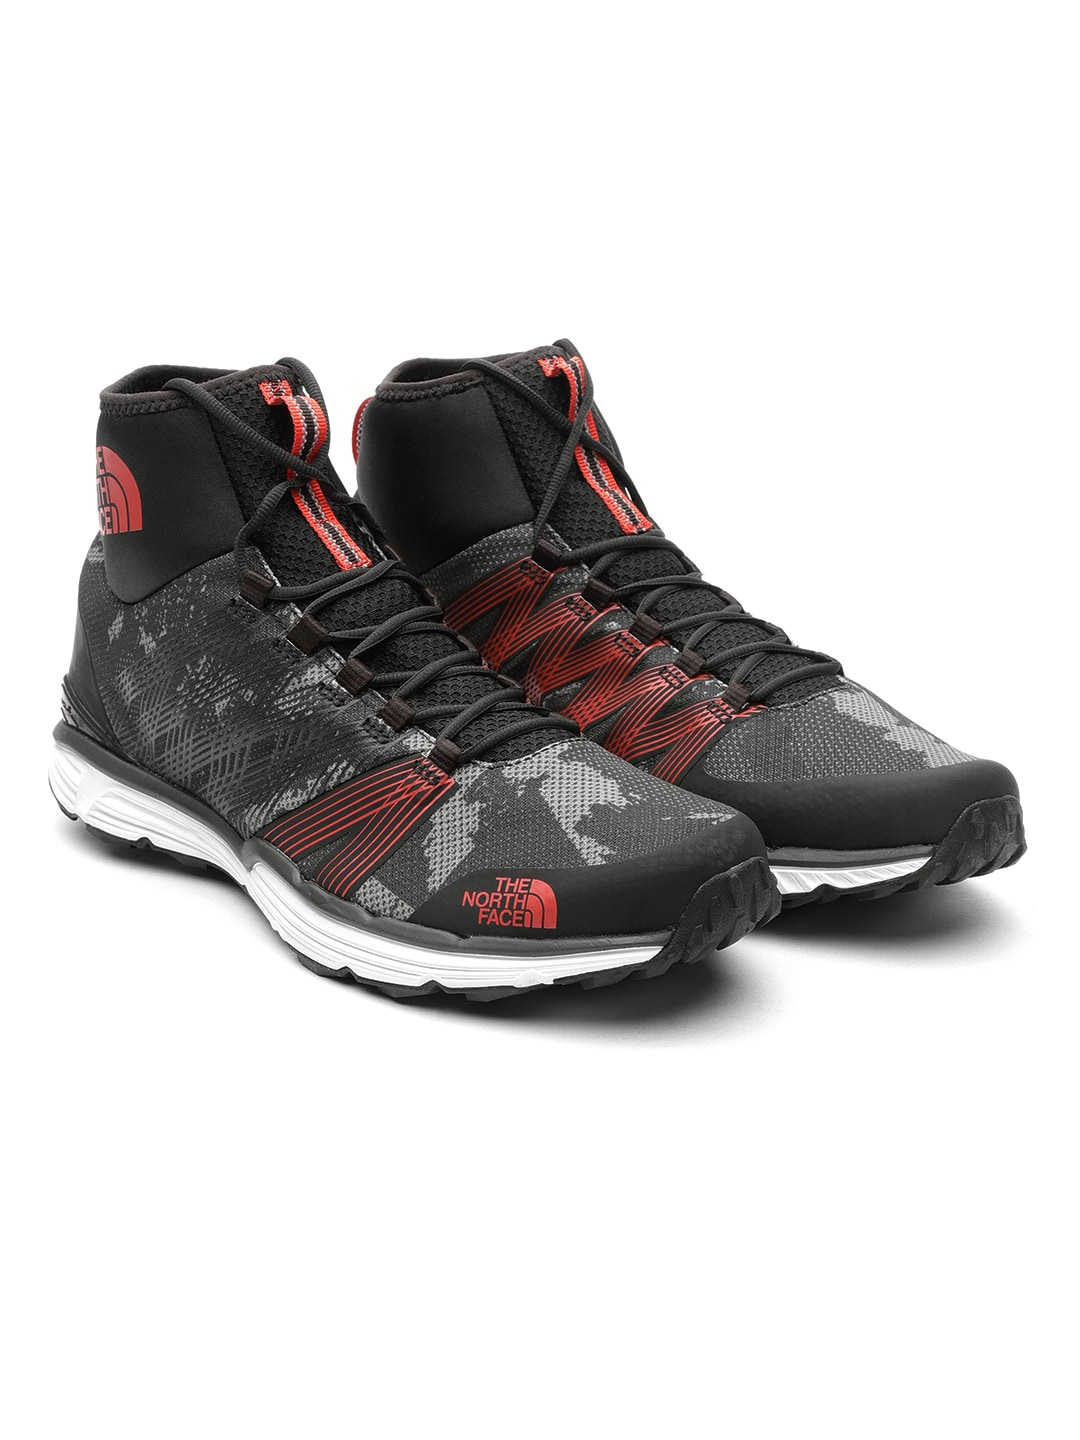 9cd551371 The North Face Men Charcoal Mesh Mid-Top Running Shoes